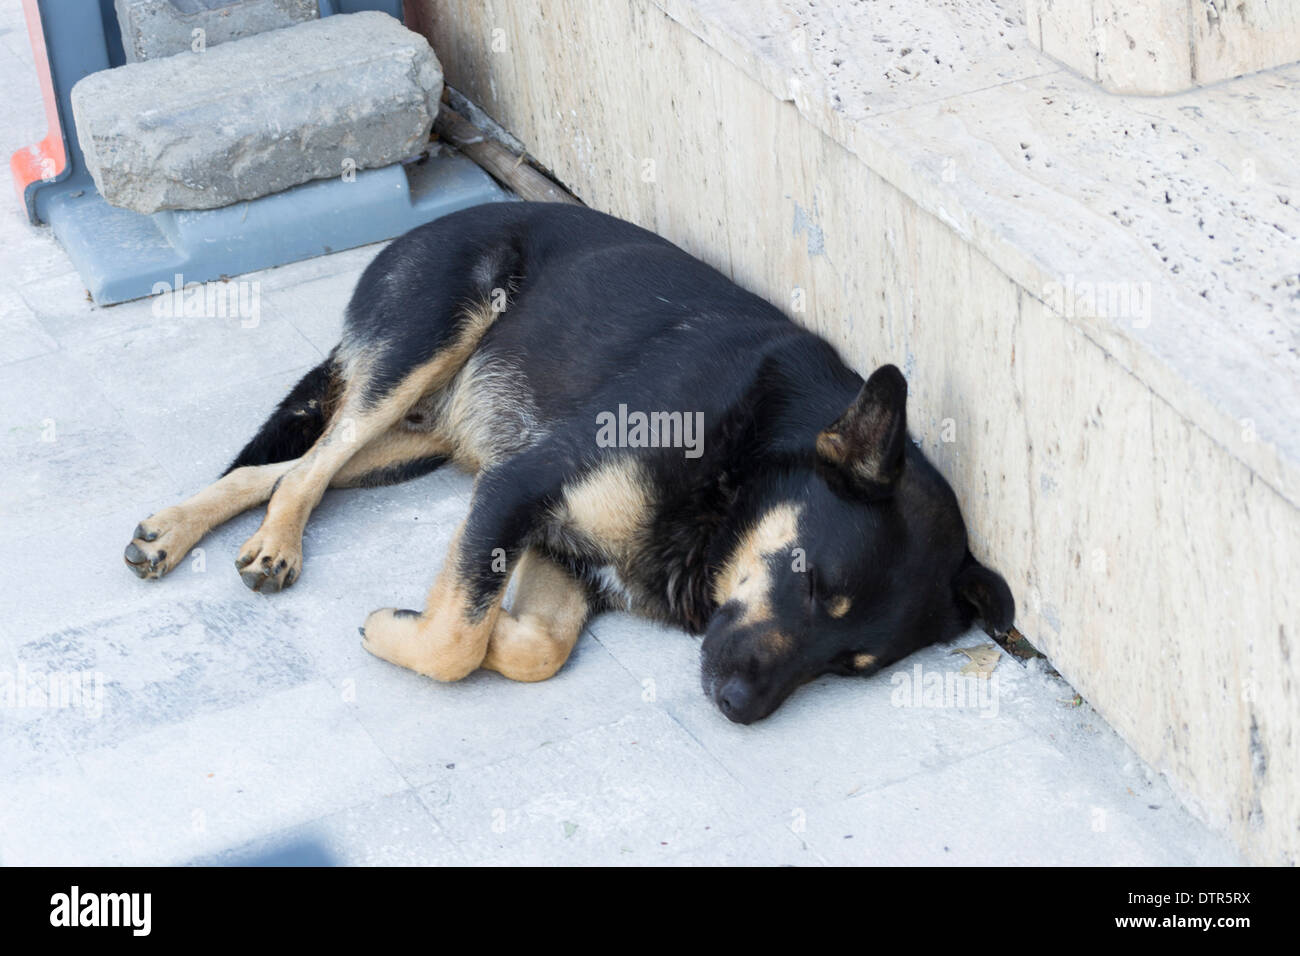 Mixed black and brown stray dog (Canis lupus familiaris) - Stock Image